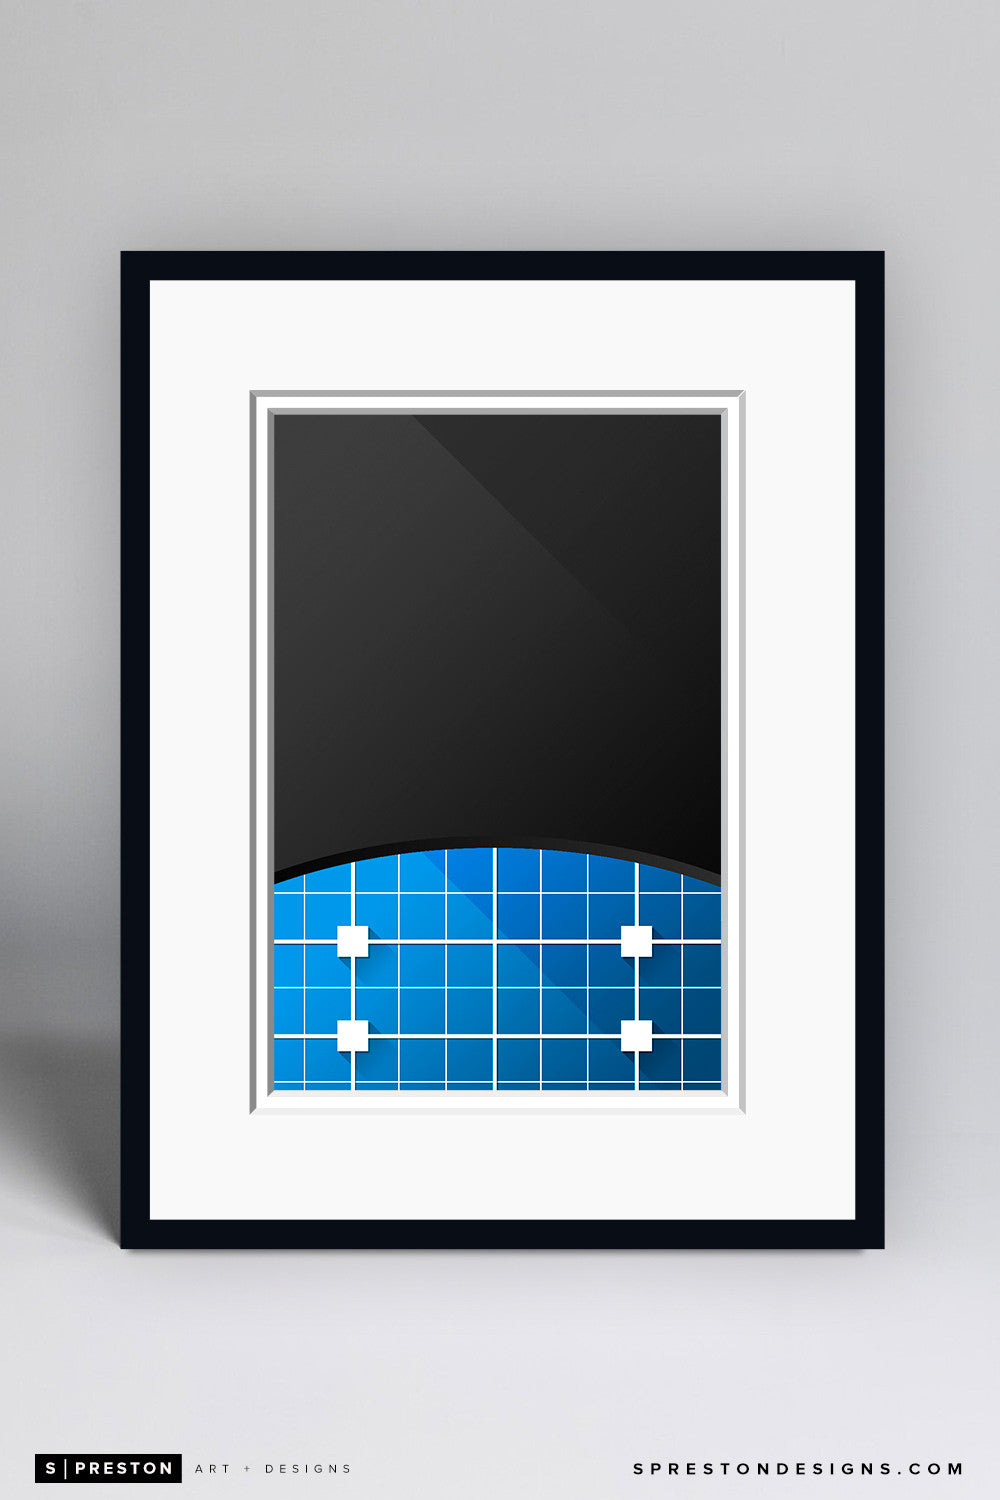 Minimalist Bank Of America Stadium Art Print - Carolina Panthers - S. Preston Art + Designs